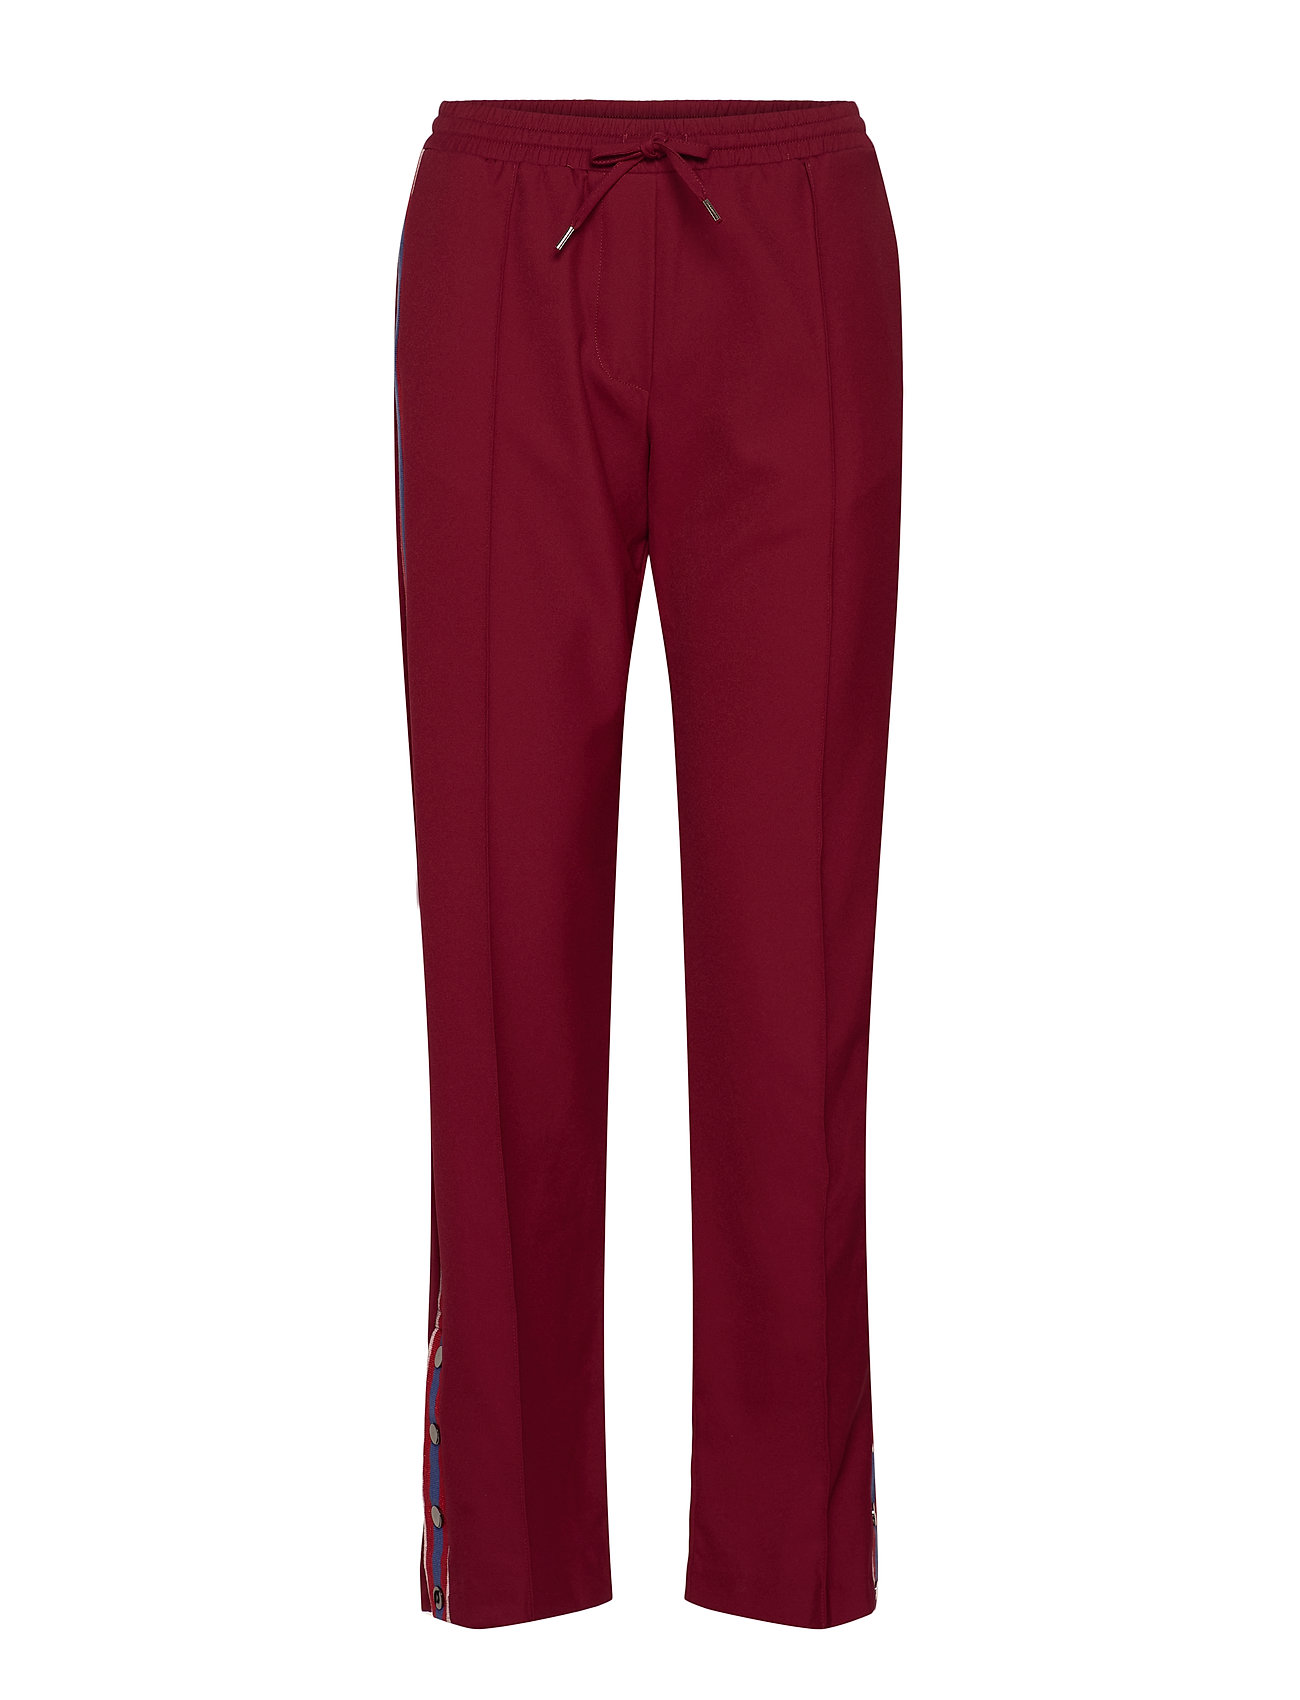 2nd One Gigi 813 Track Pants - RED TRACK